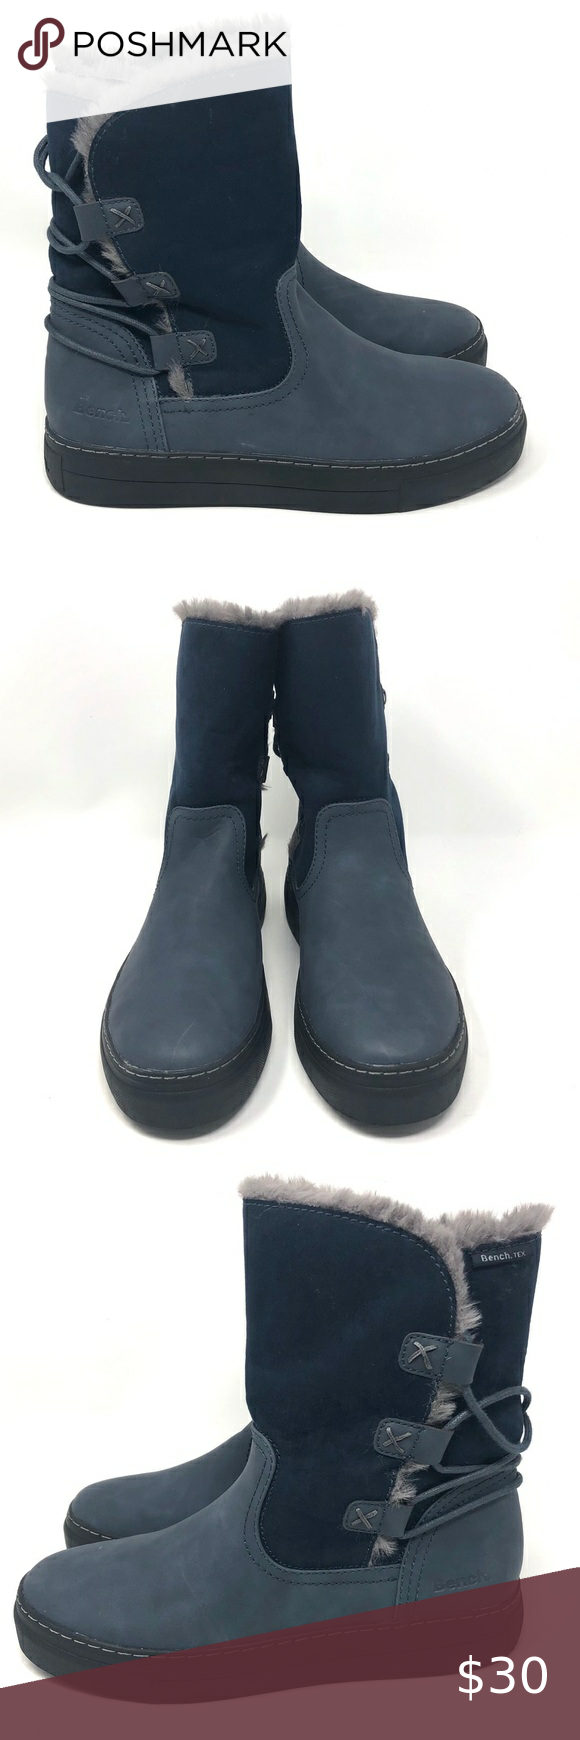 Bench Fur Line Lace Up Winter Boot Blue Womens 39 In 2020 Boots Winter Boot Shoe Laces